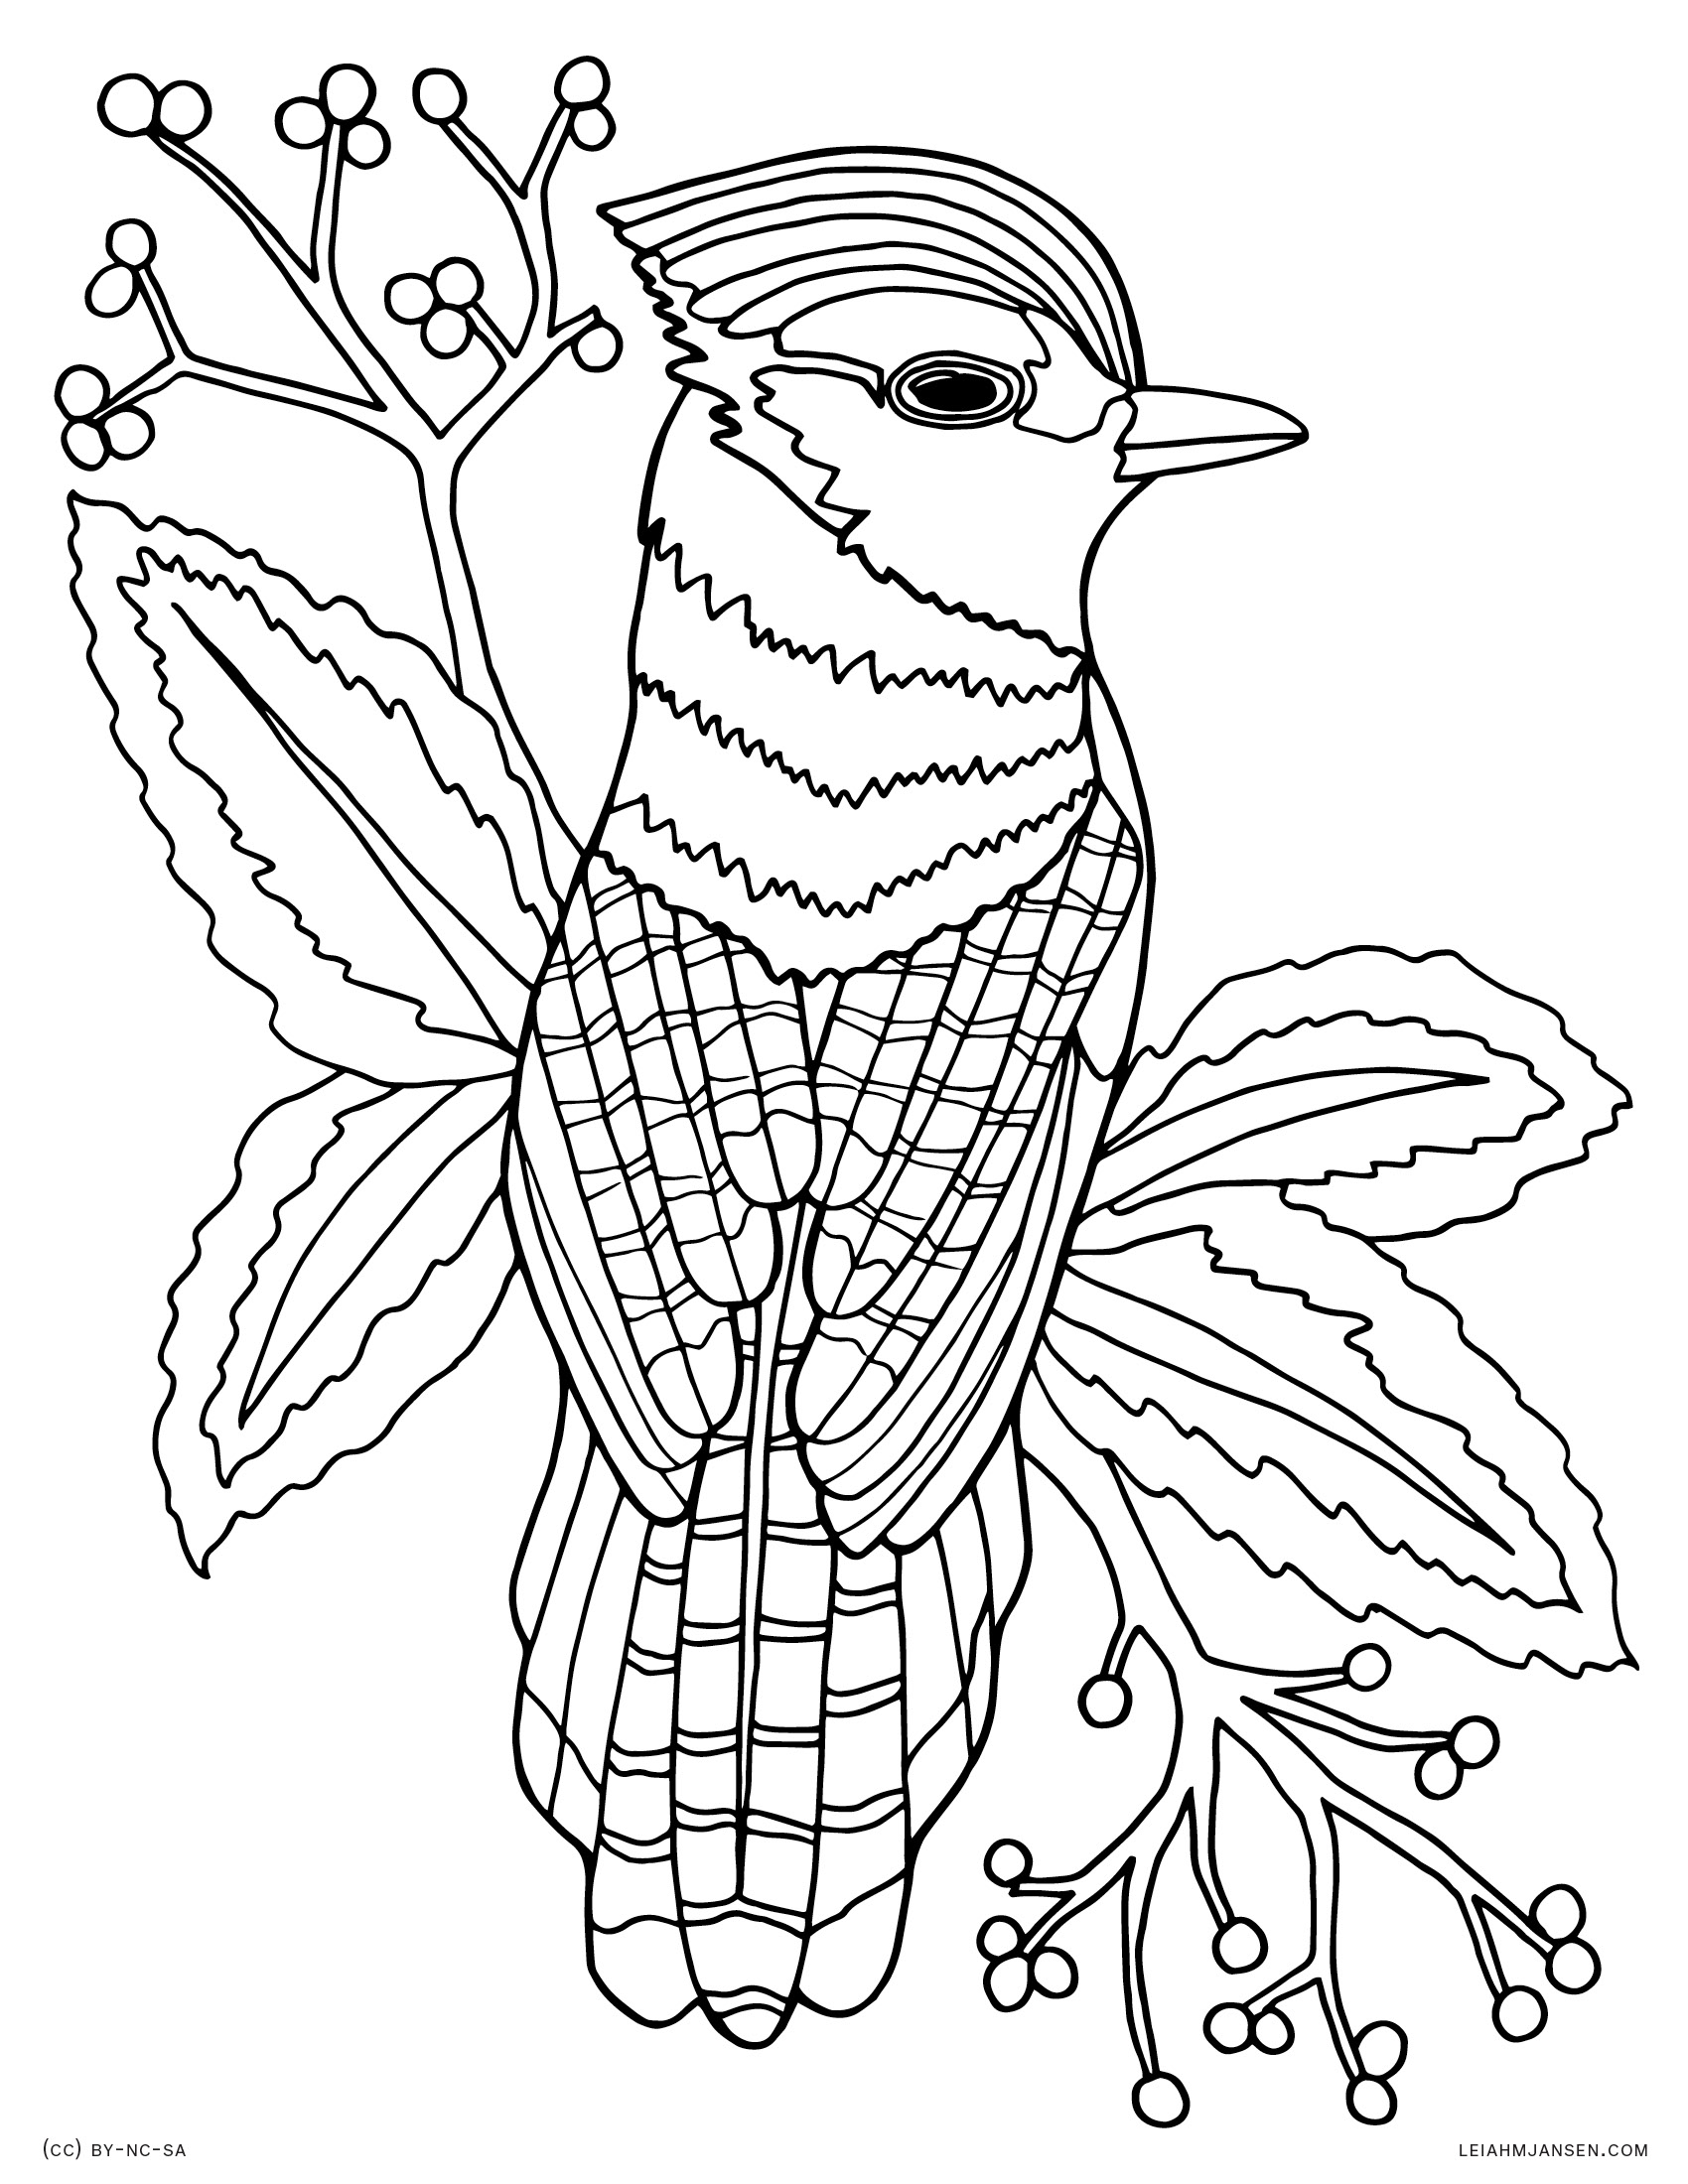 Bluejay bird realistic blue jay drawing free printable coloring page for adults and kids